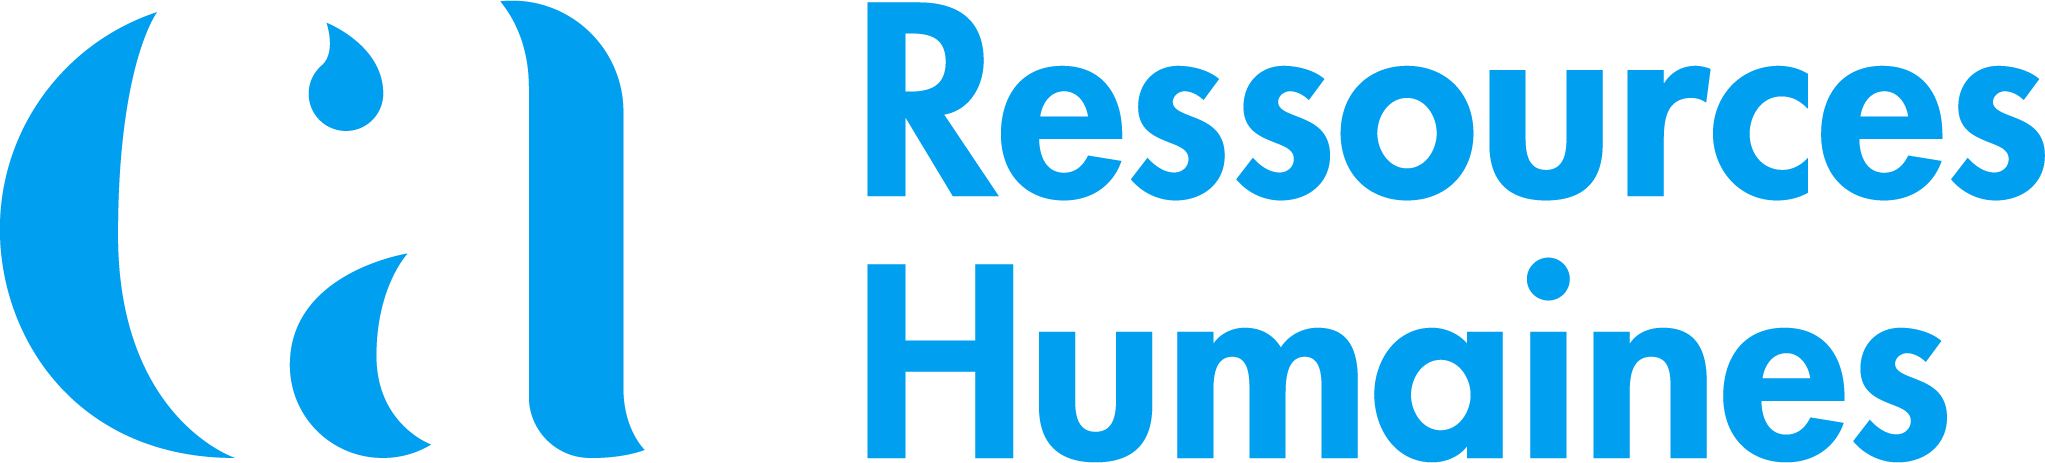 Centre CA Ressources Humaines